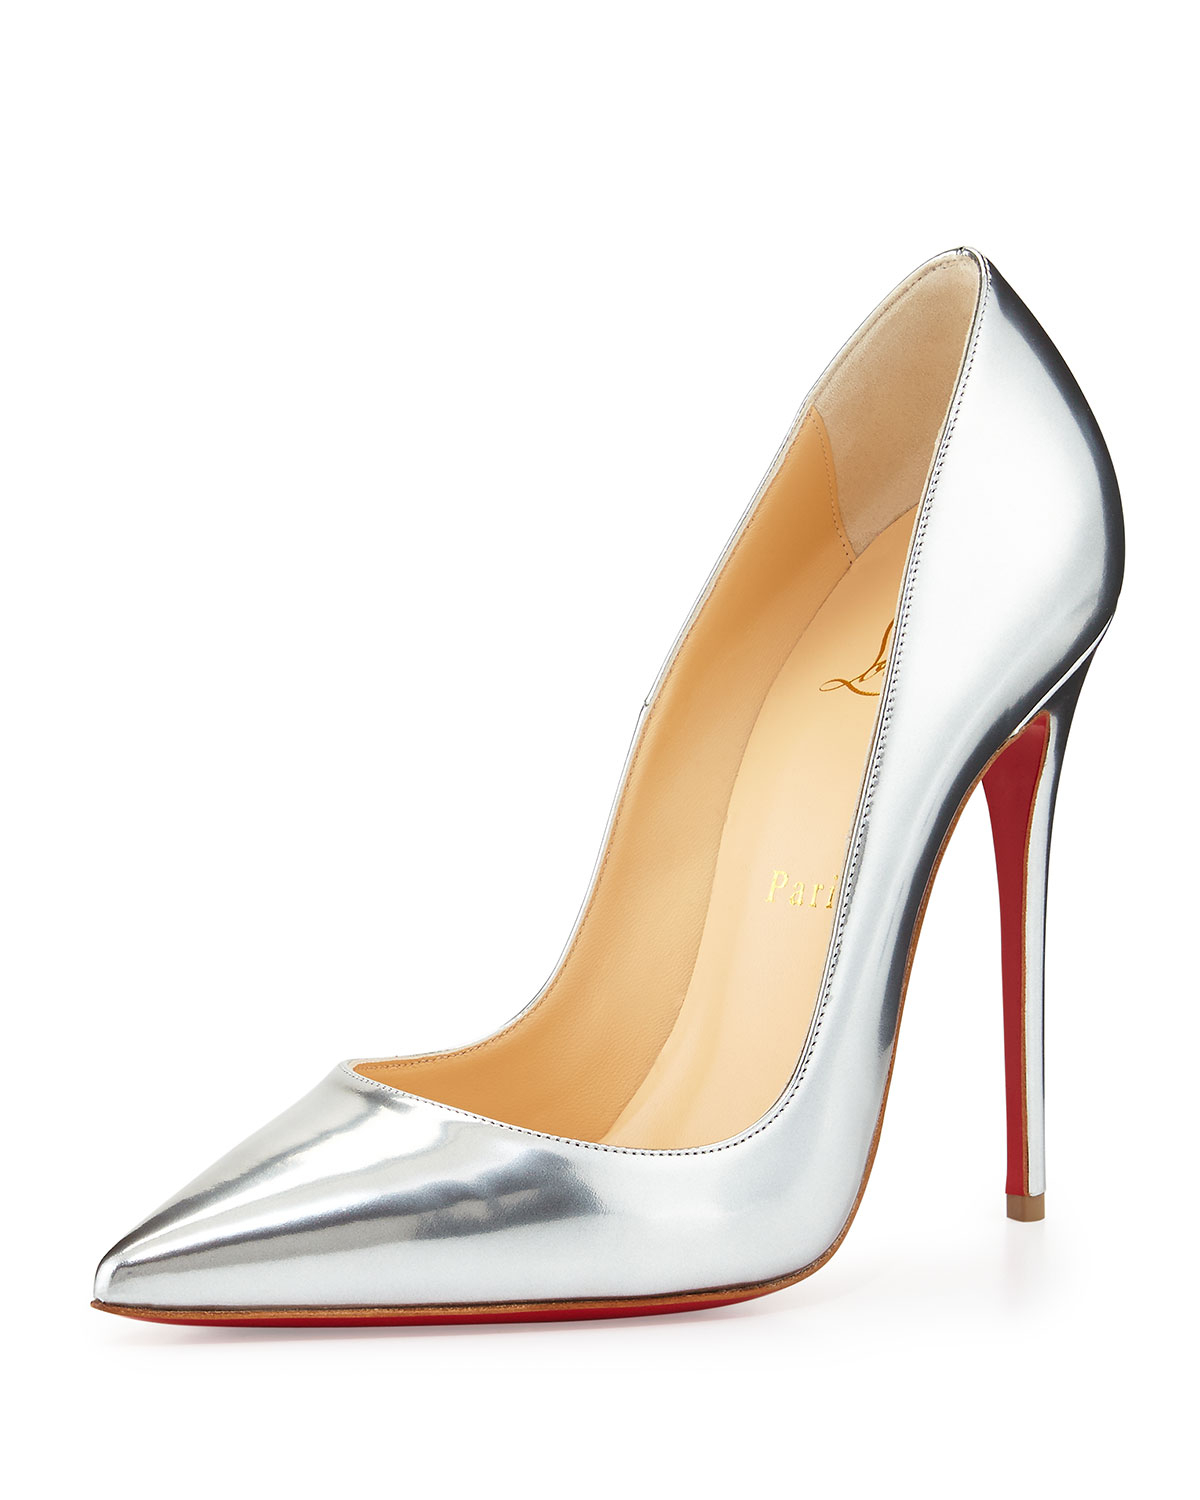 chris louboutin shoes - Christian louboutin So Kate Metallic Leather Pumps in Silver | Lyst